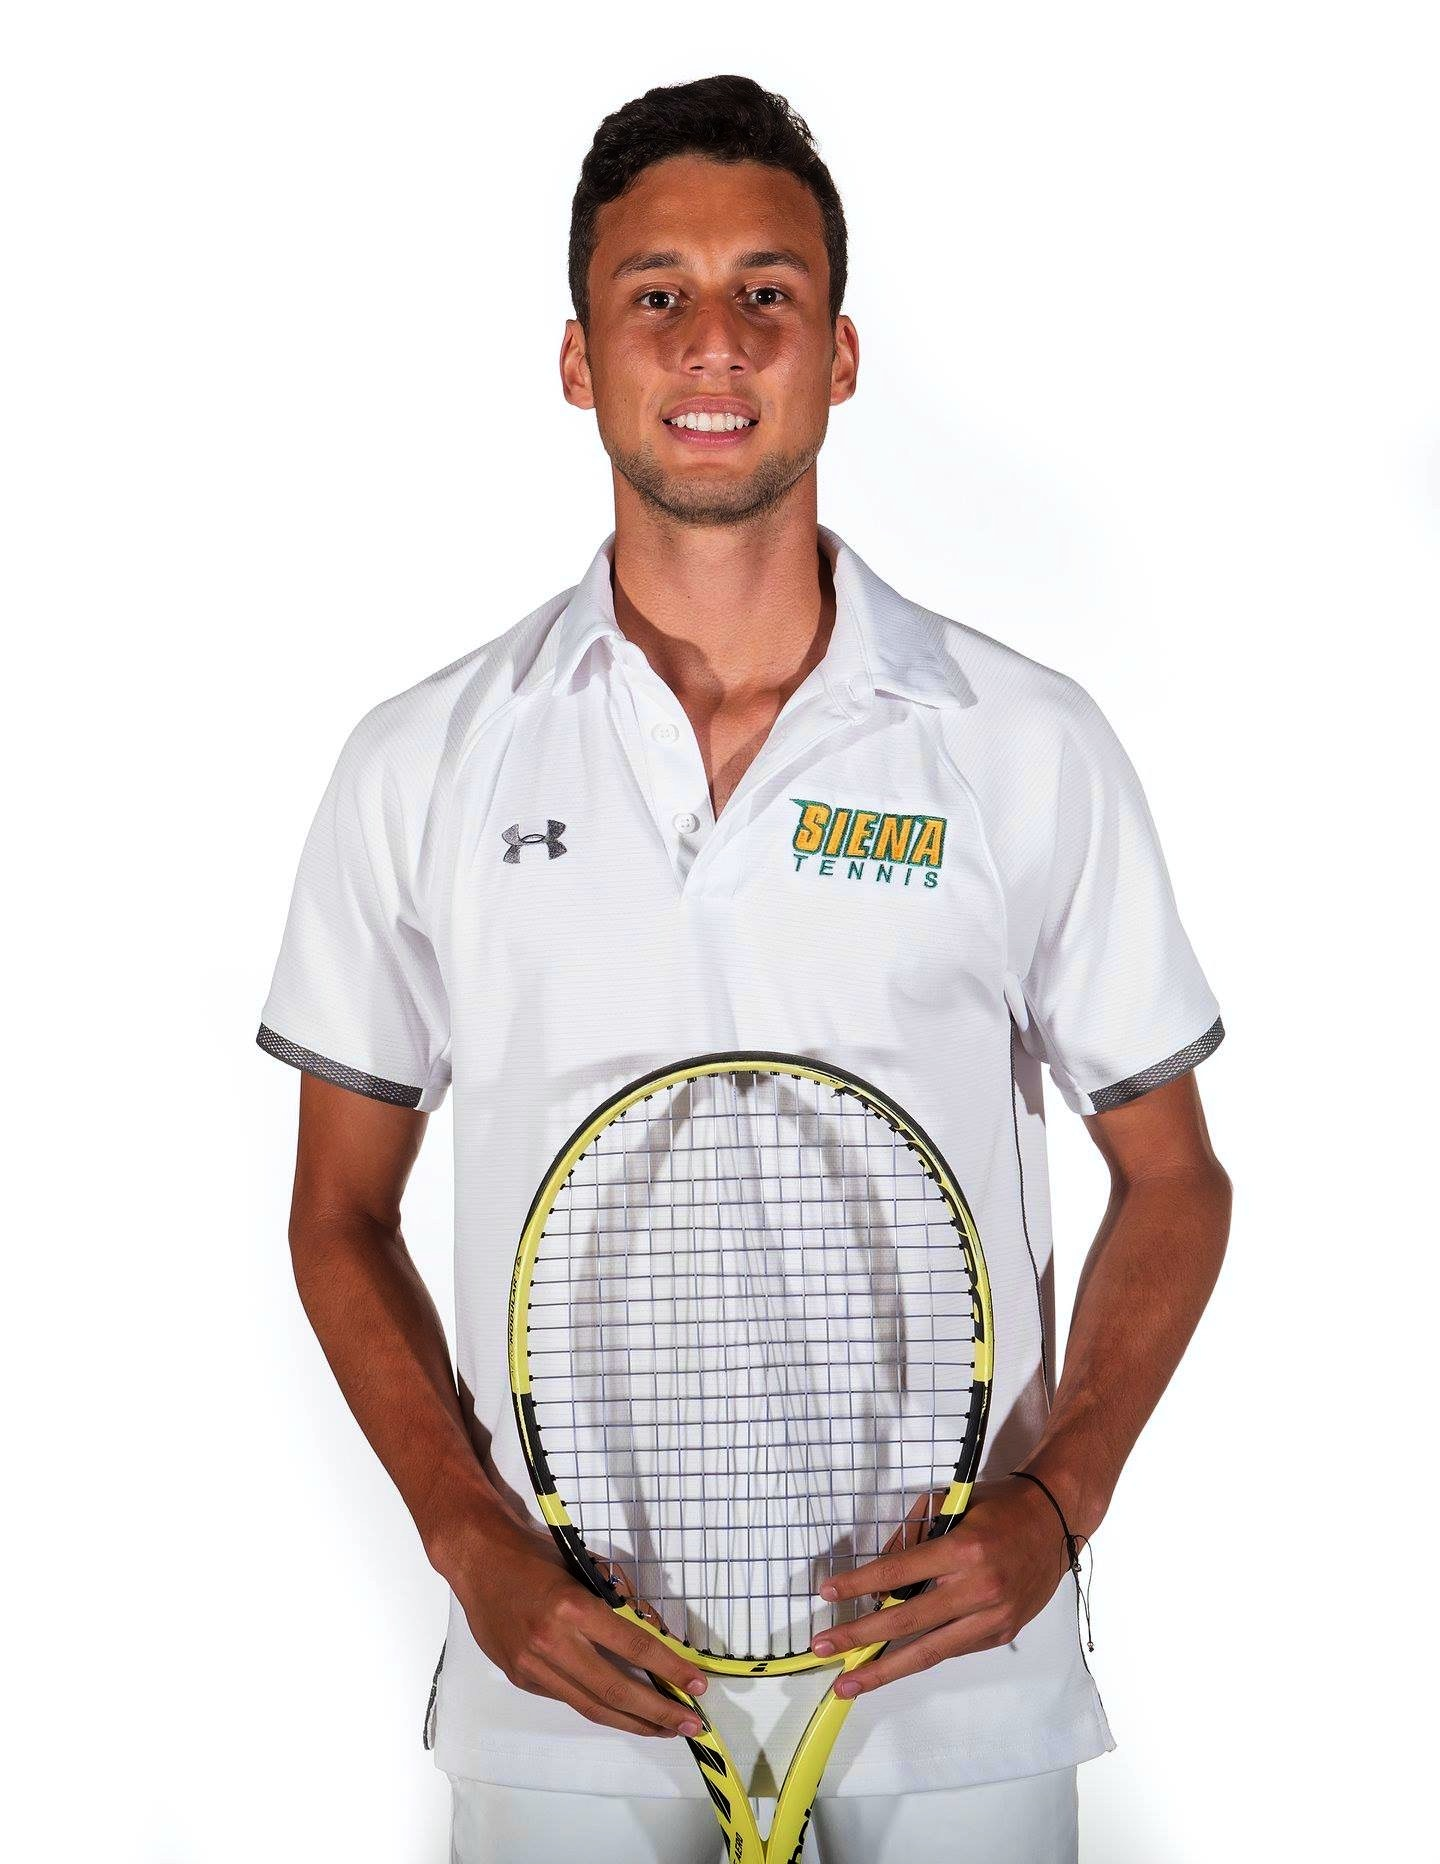 Geovanny M. teaches tennis lessons in Watervliet, NY